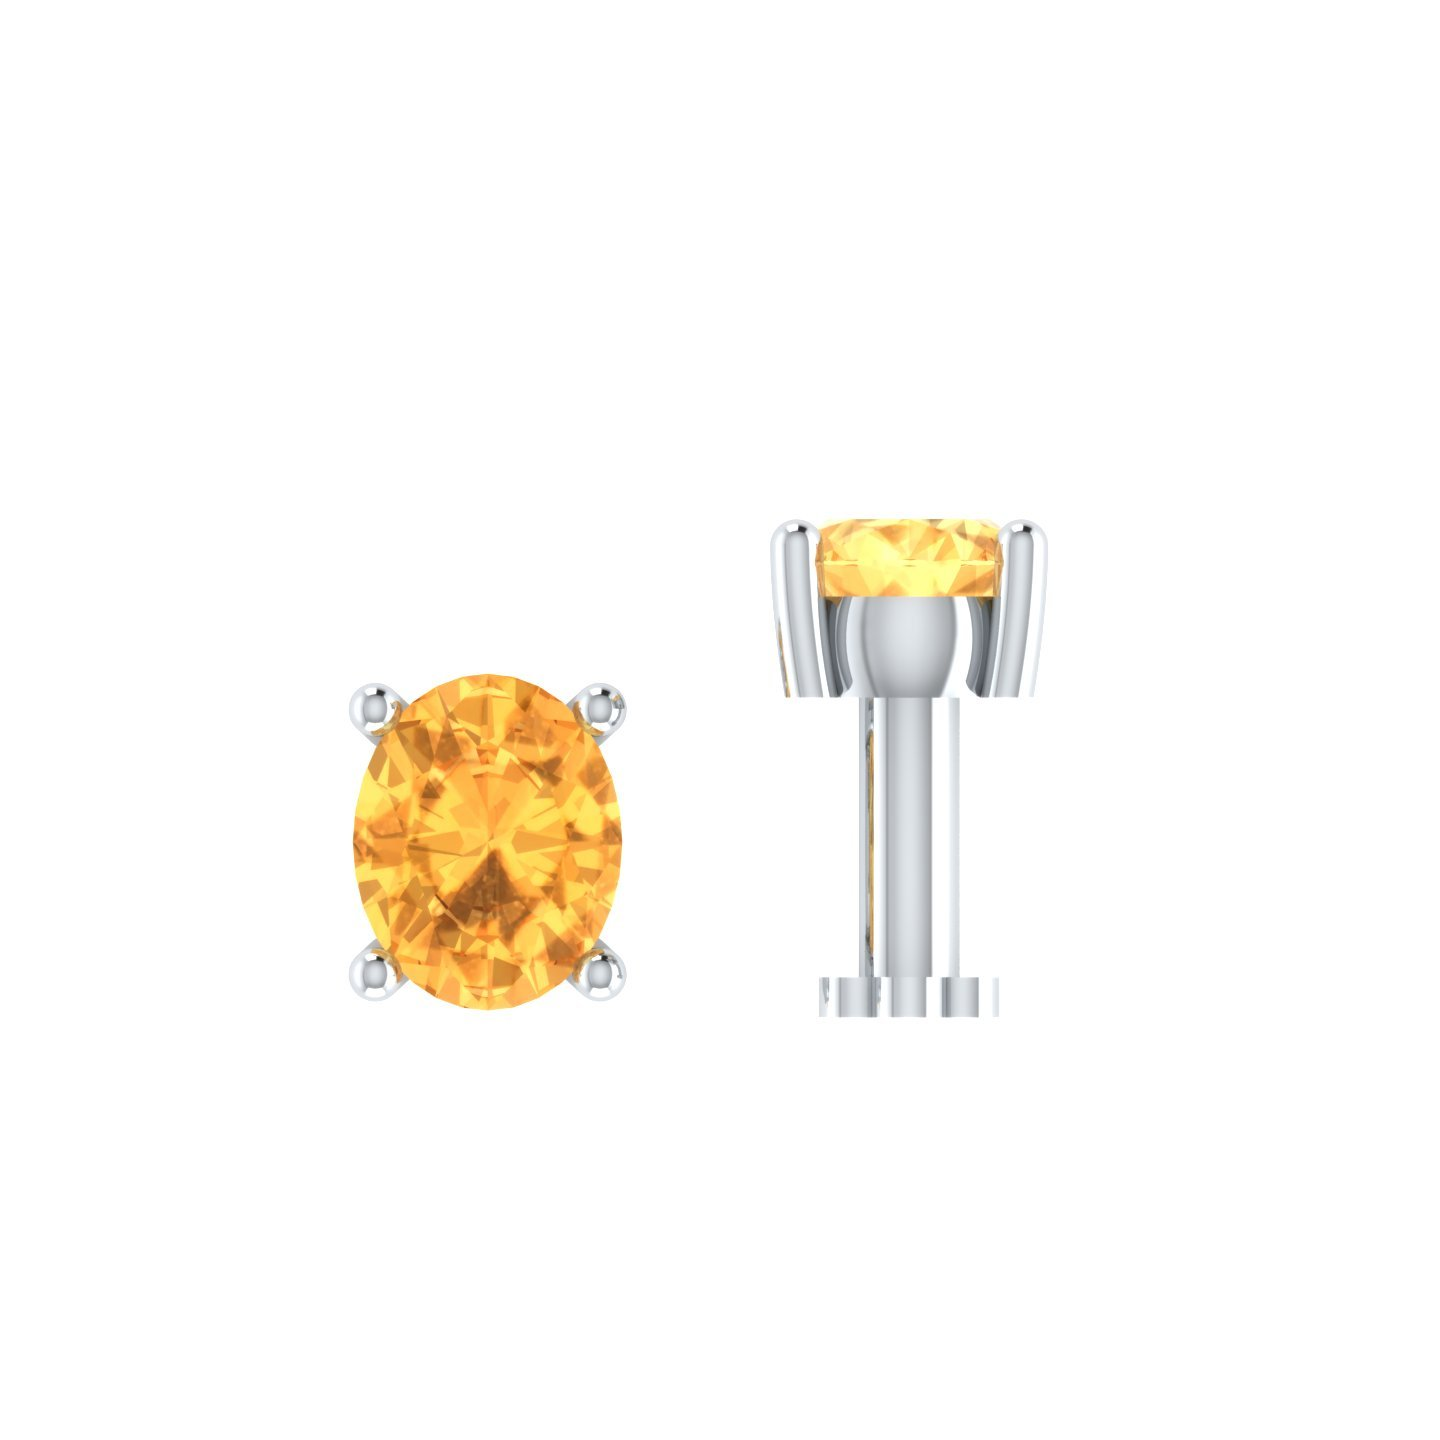 Smjewels 0.15 Ct Citrine Solitaire Nose Bone 925 Sterling Silver Screw Stud Piercing Ring Pin